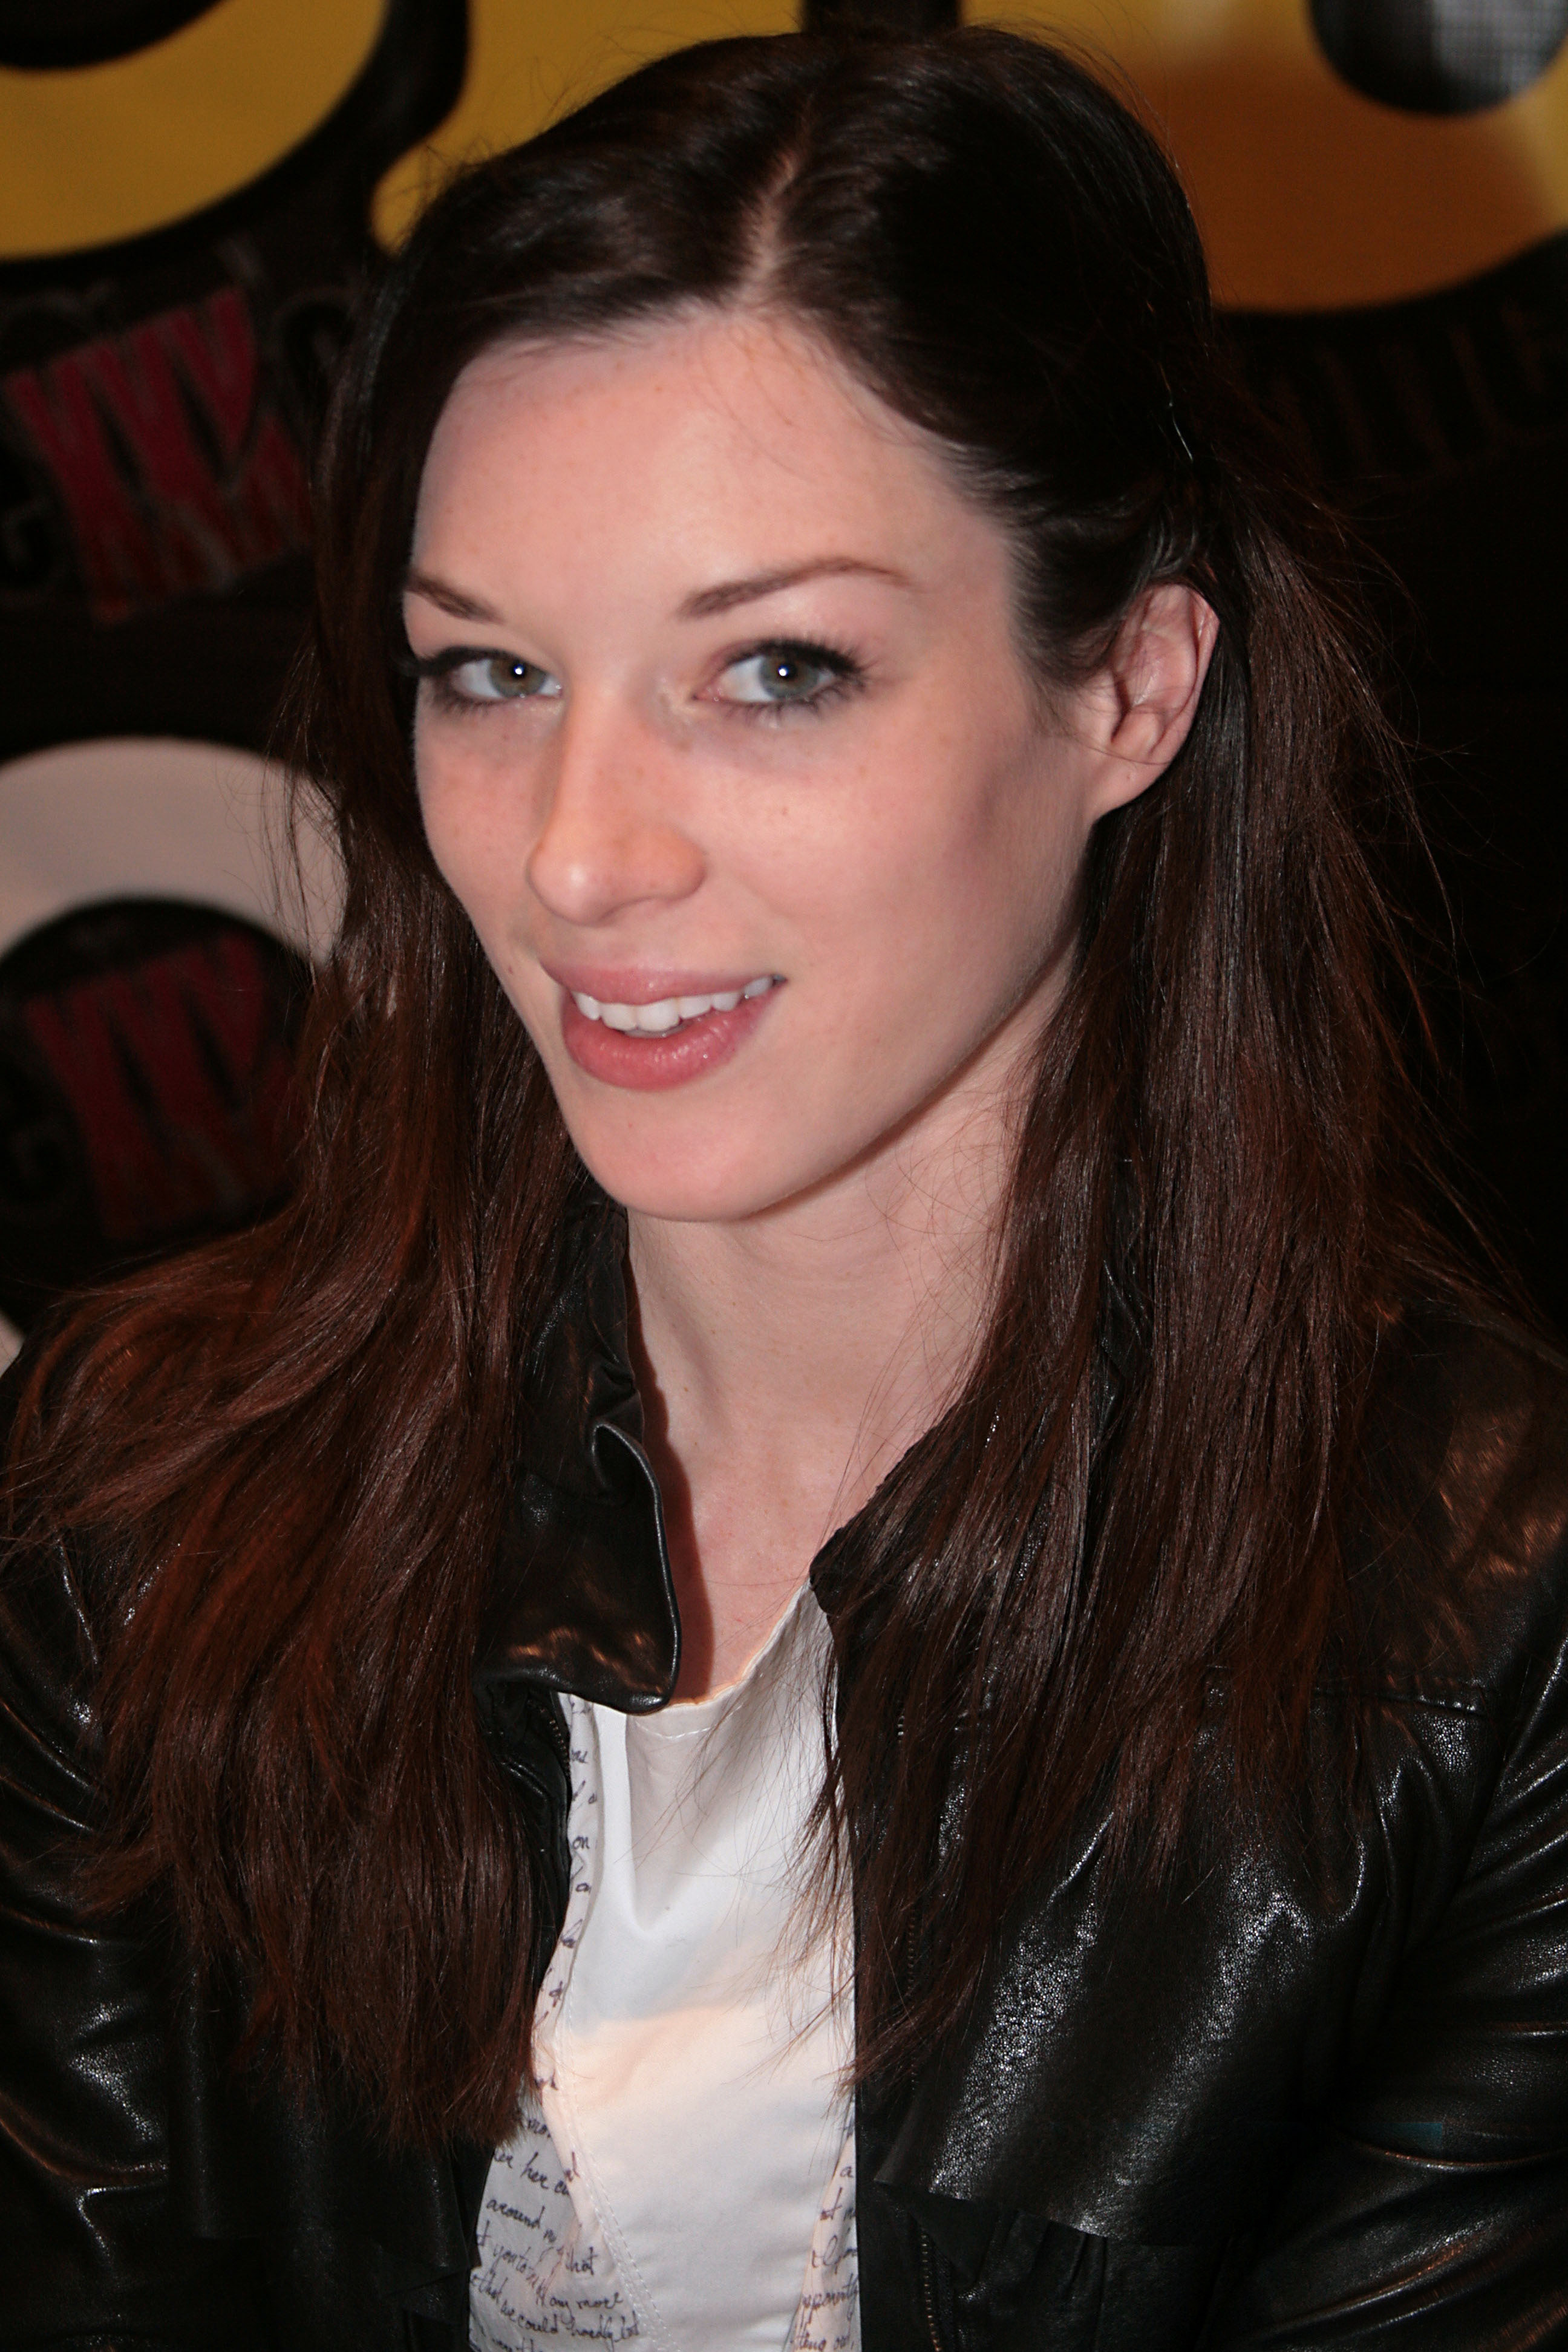 Discussion on this topic: Wendy Phillips, stoya/